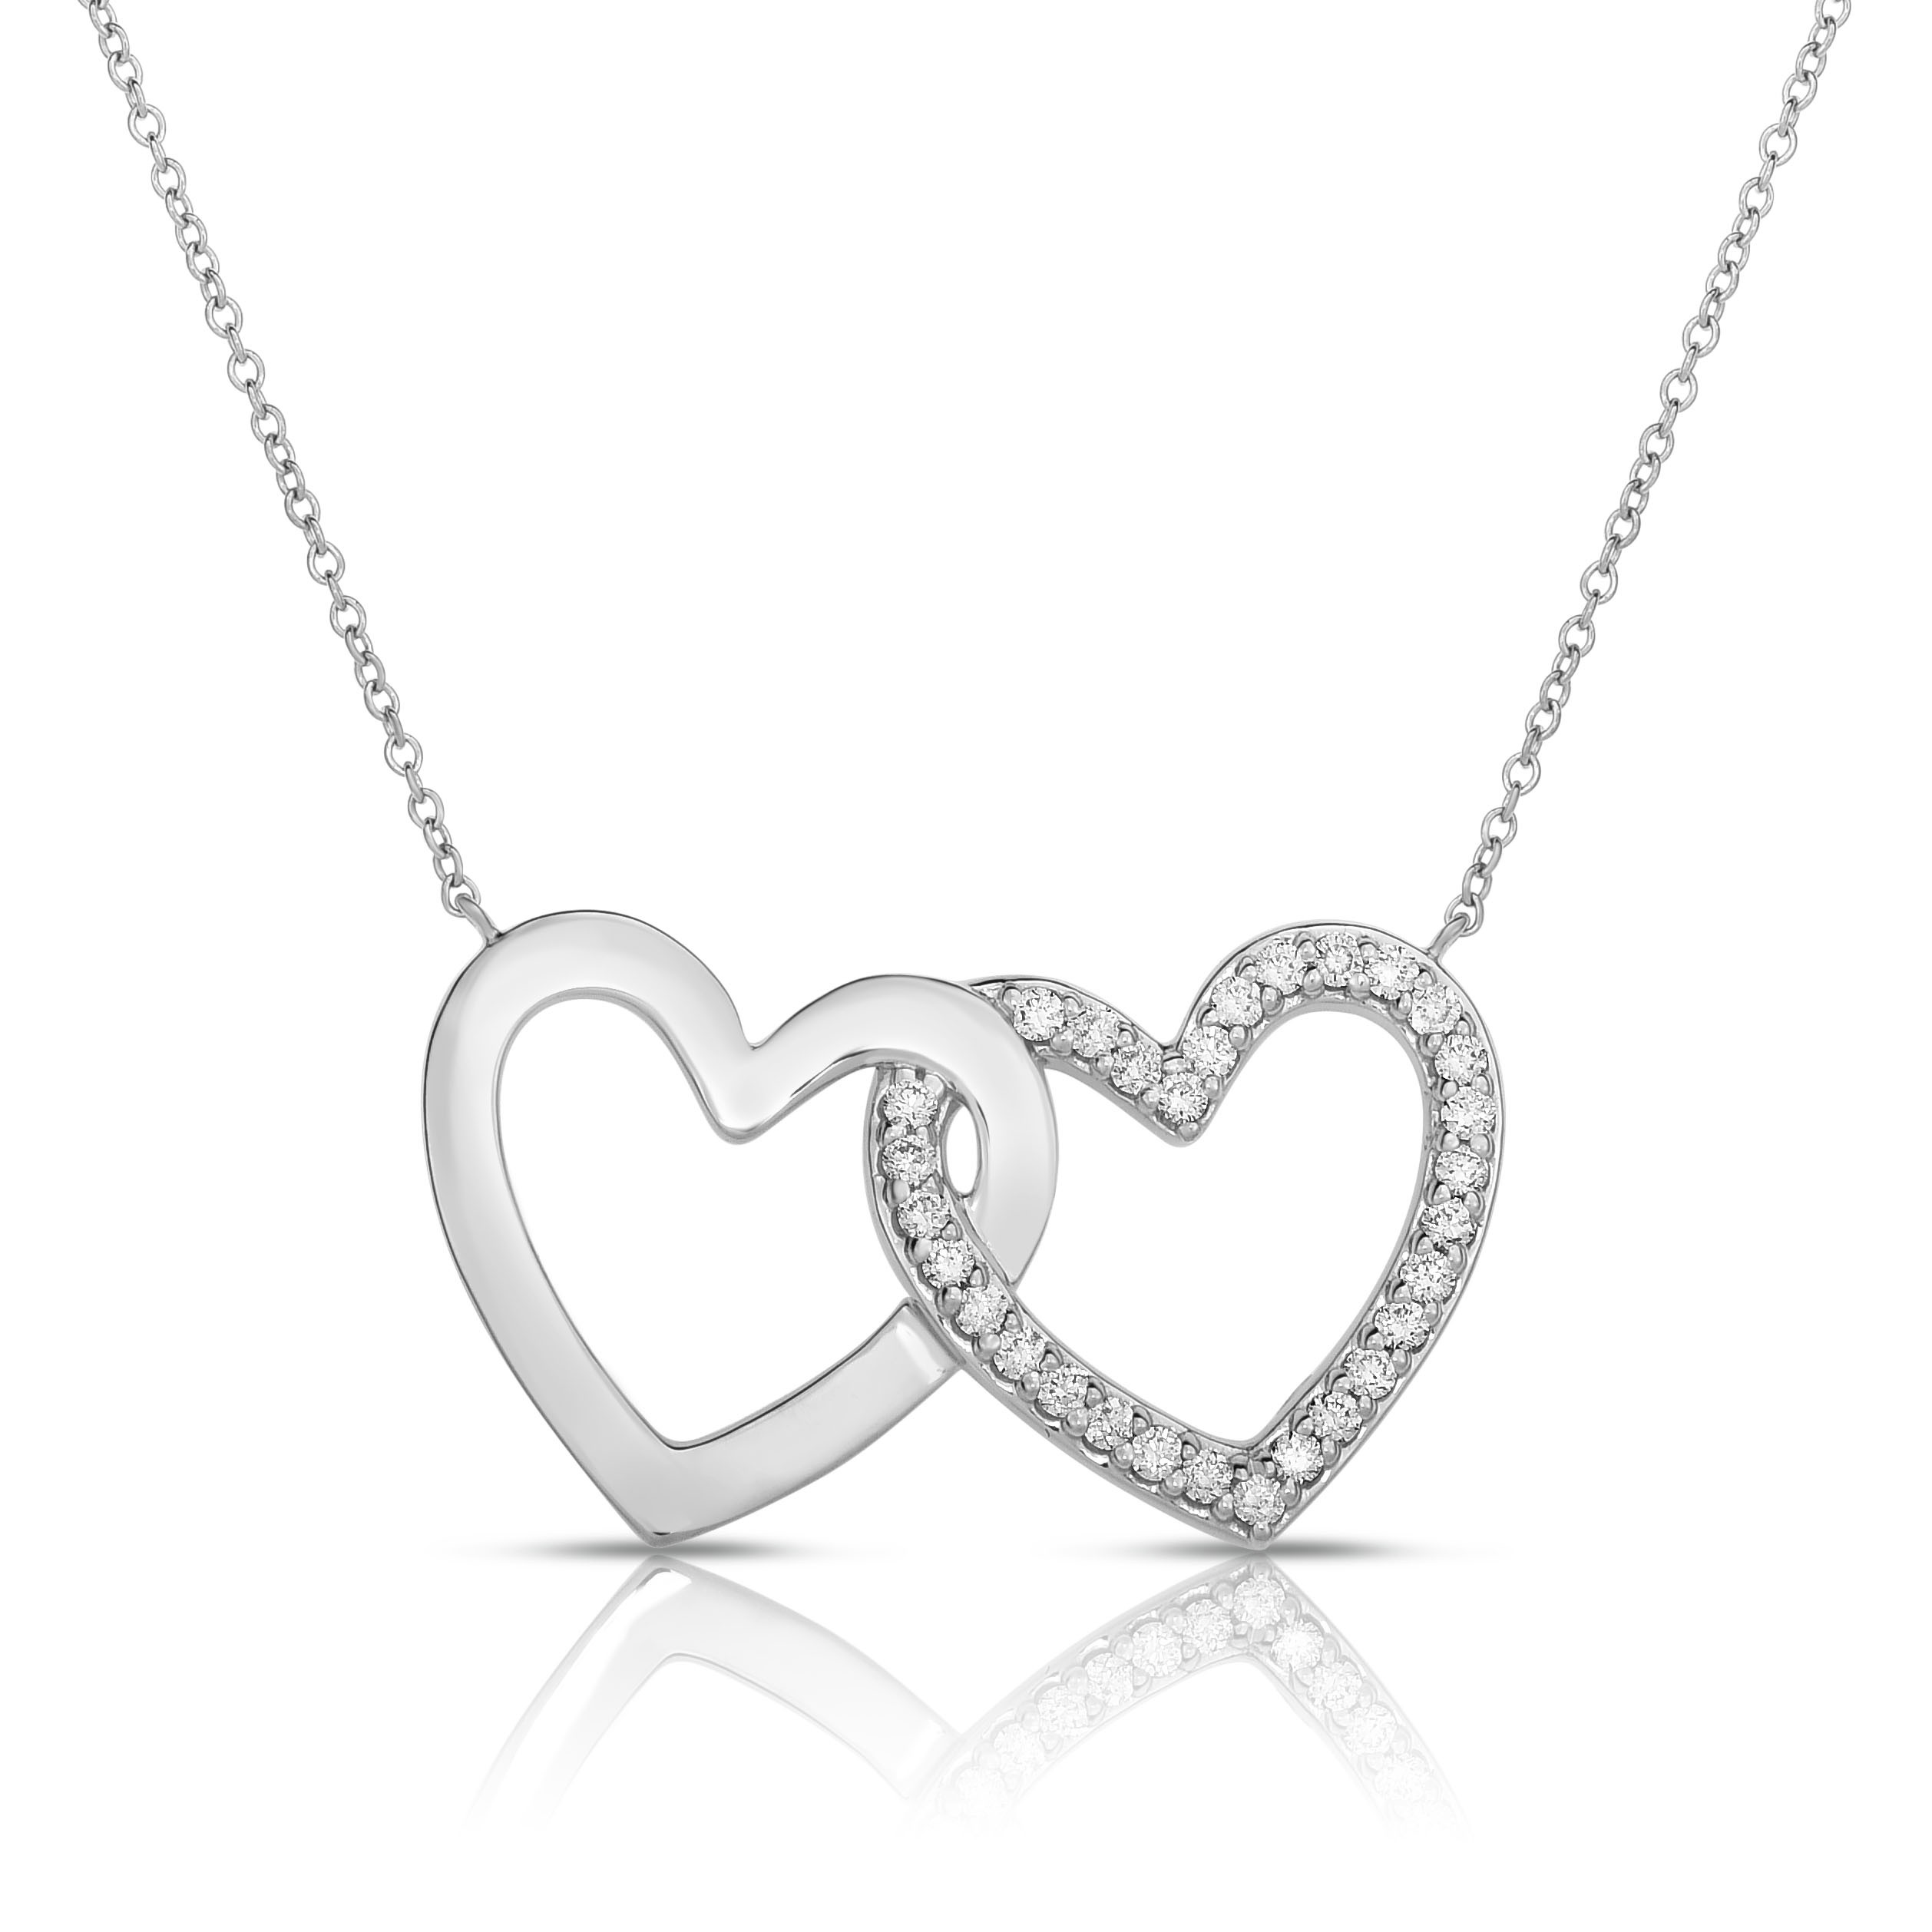 18K White Gold 2 Hearts Love Bonds Necklace with Lab-Grown Diamonds on AIDIA Extendable Link Chain